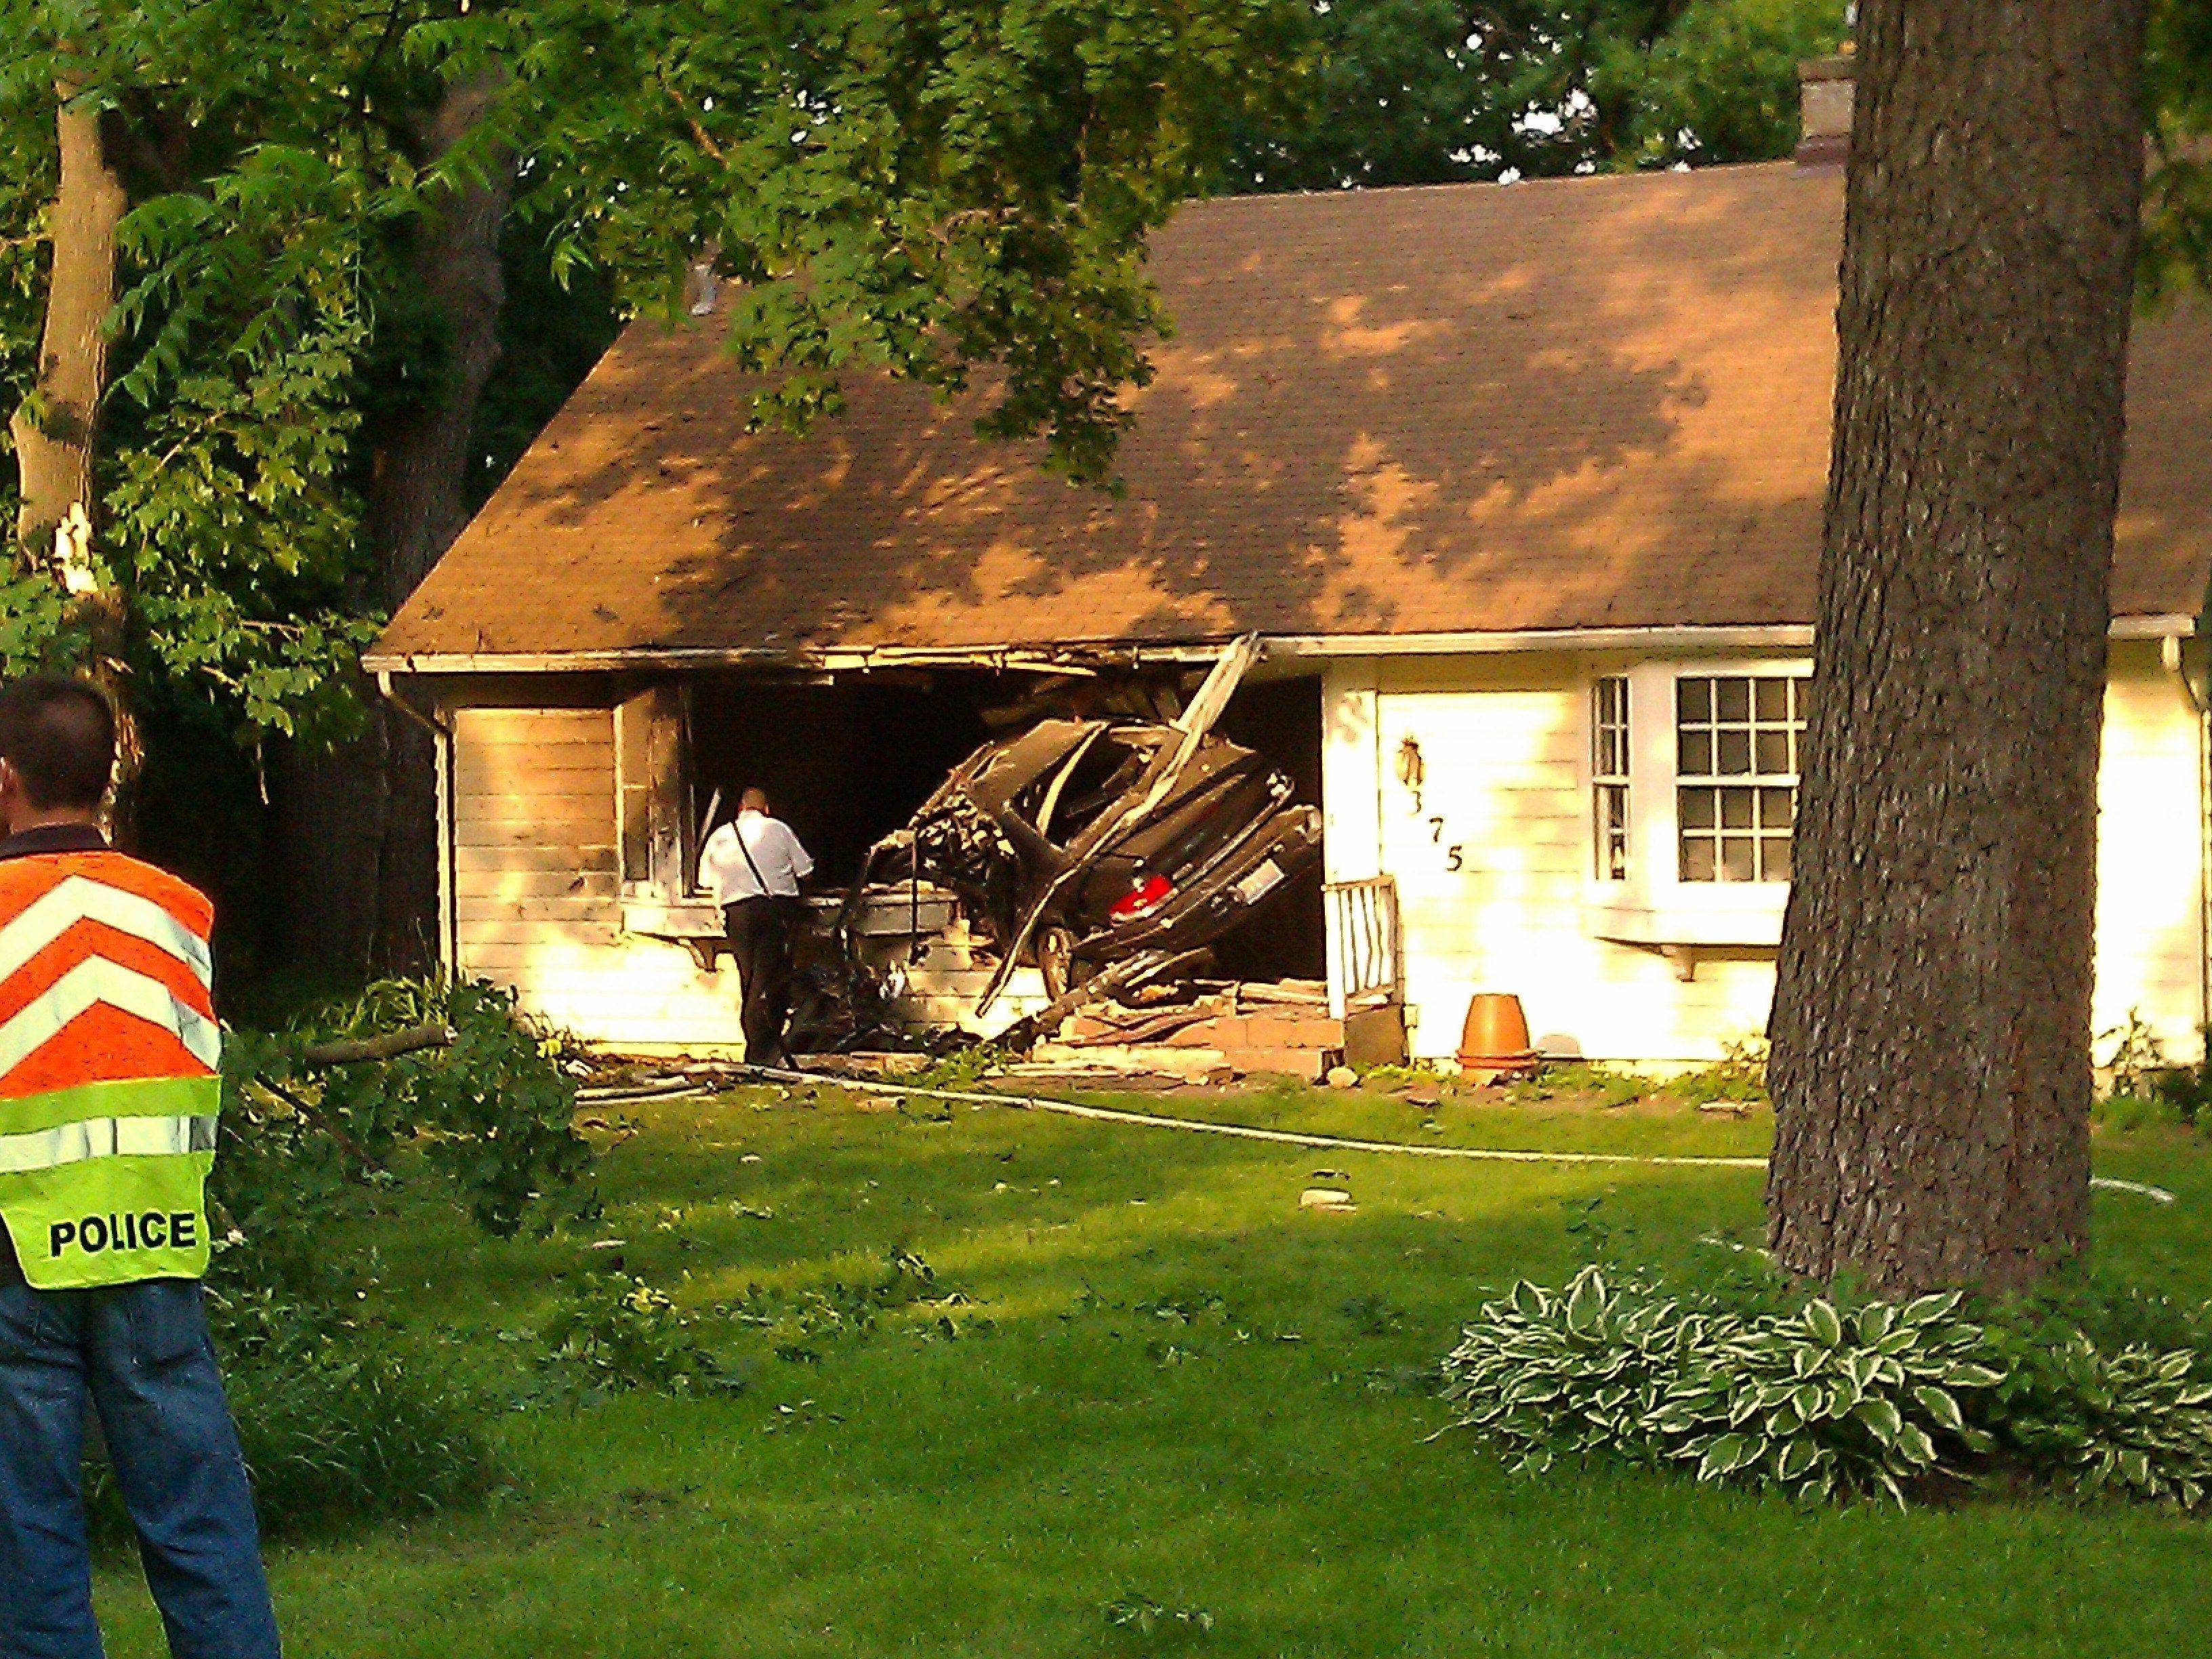 Personnel examine the scene where a vehicle struck a house along Route 31 at Mooseheart Road in North Aurora on Tuesday.